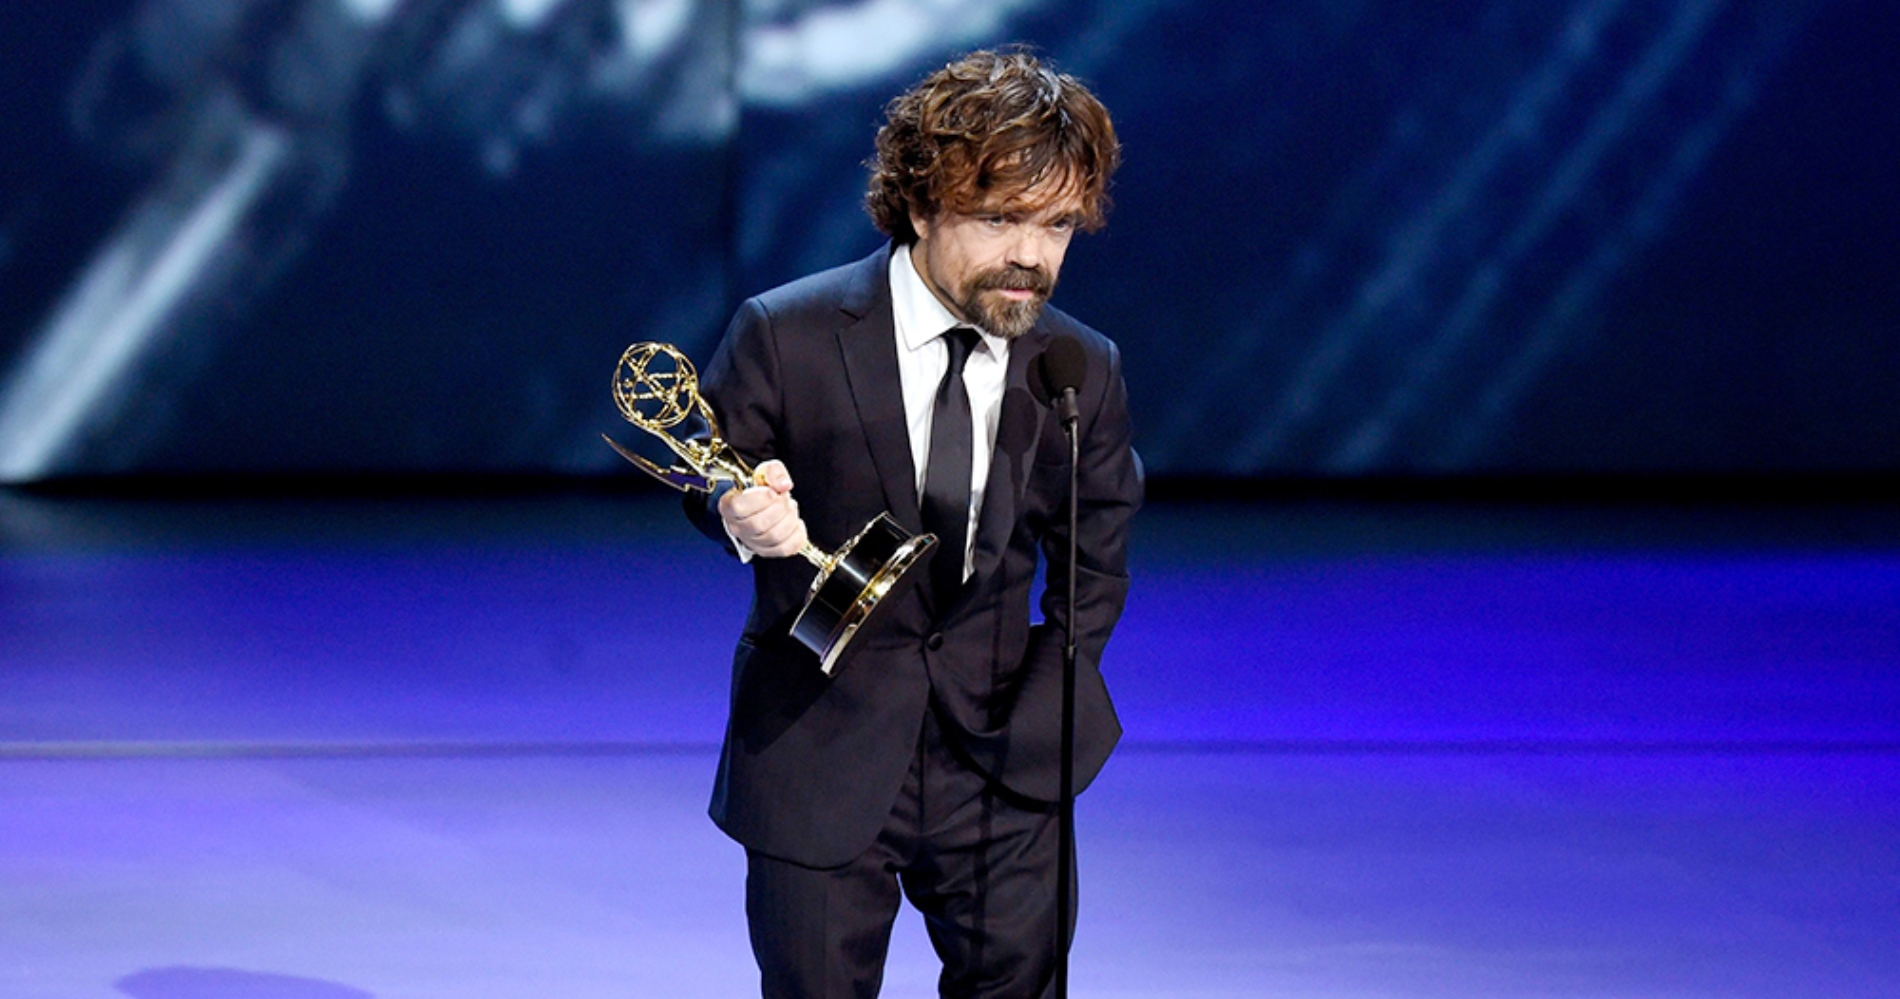 "<span class=""entry-title-primary"">Emmy Awards 2019: Addio da vincitore per 'Game of Thrones'. Bene 'Chernobyl'</span> <span class=""entry-subtitle"">Si sono assegnati i 71° Primetime Emmy Awards. Ecco tutti i vincitori.</span>"